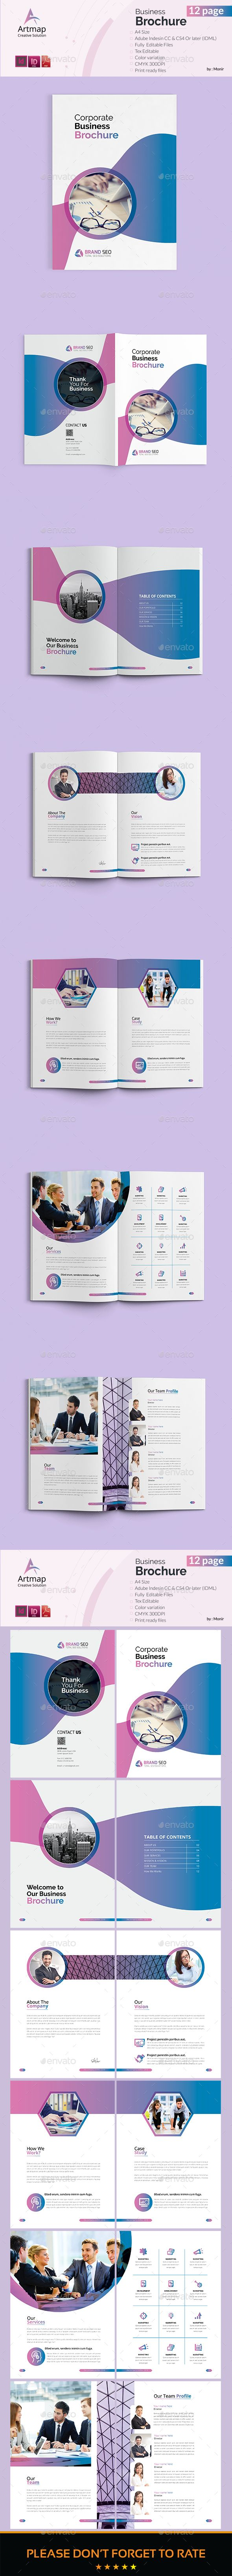 Business Brochure Template 12 Pages Coverpage Design Pinterest